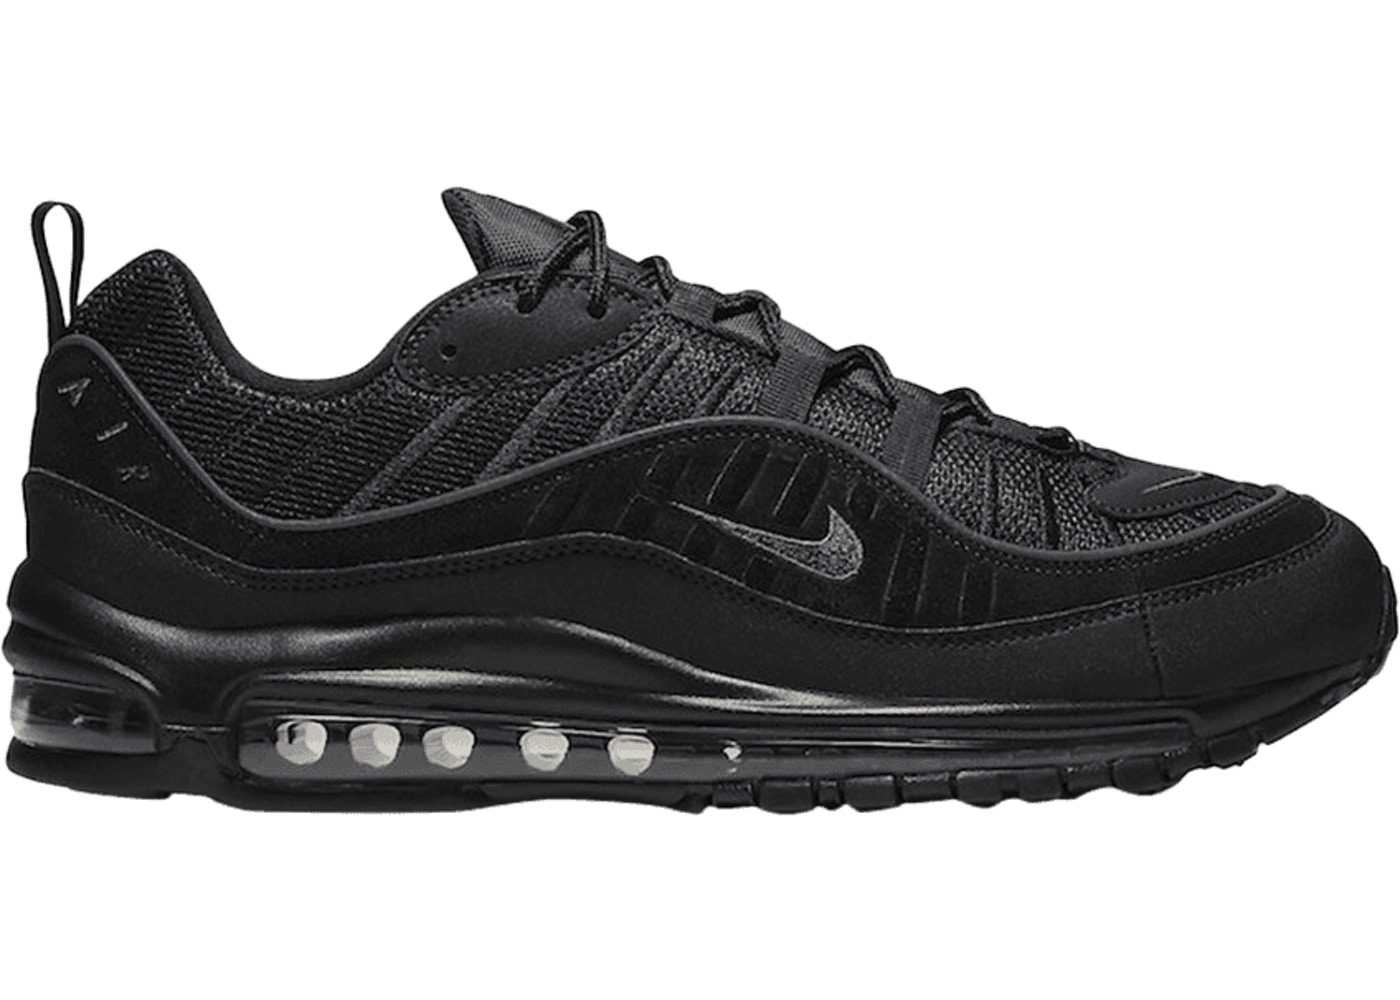 Air Max 98 Black Anthracite Black Sole